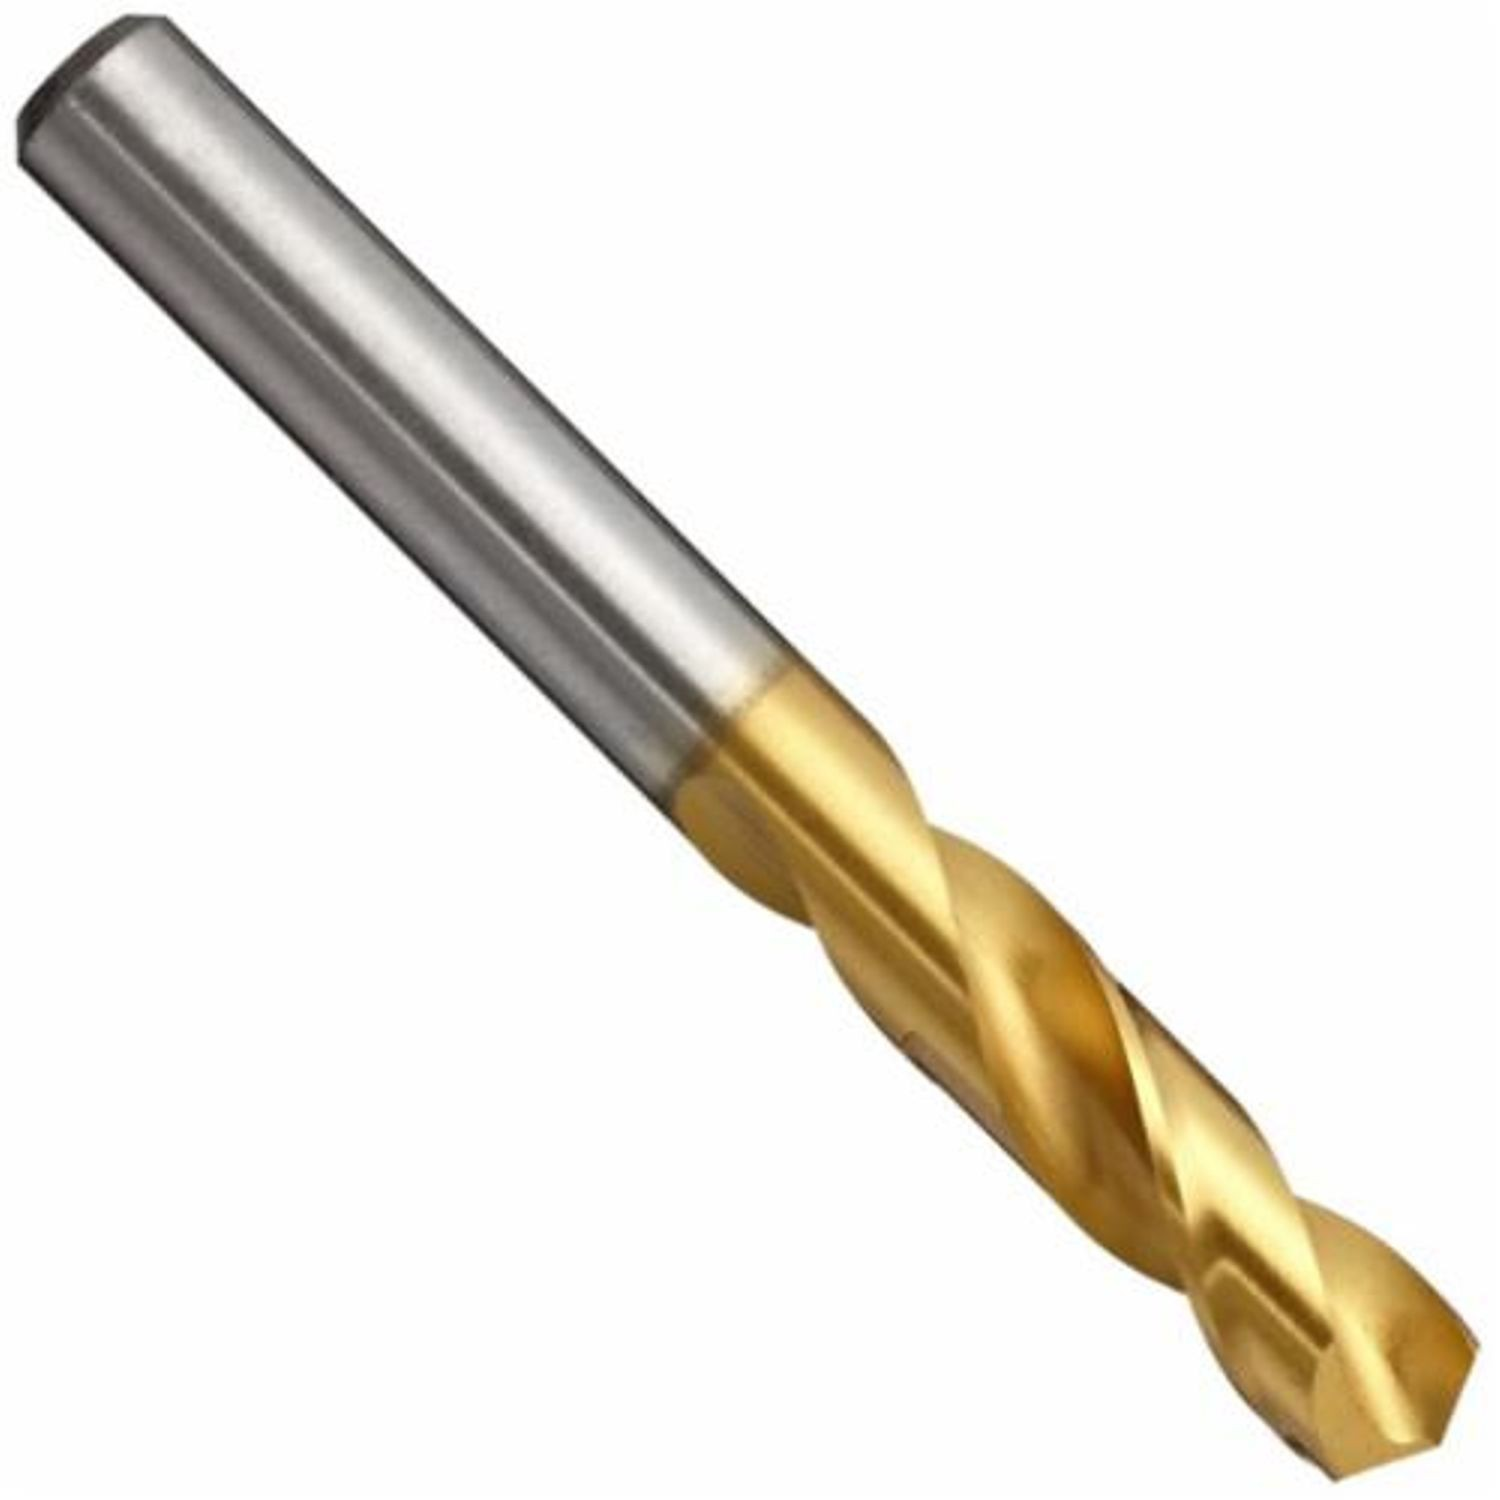 Morse 9.5mm Solid Carbide Drill TiALN High Performance Coolant Thru Long Length